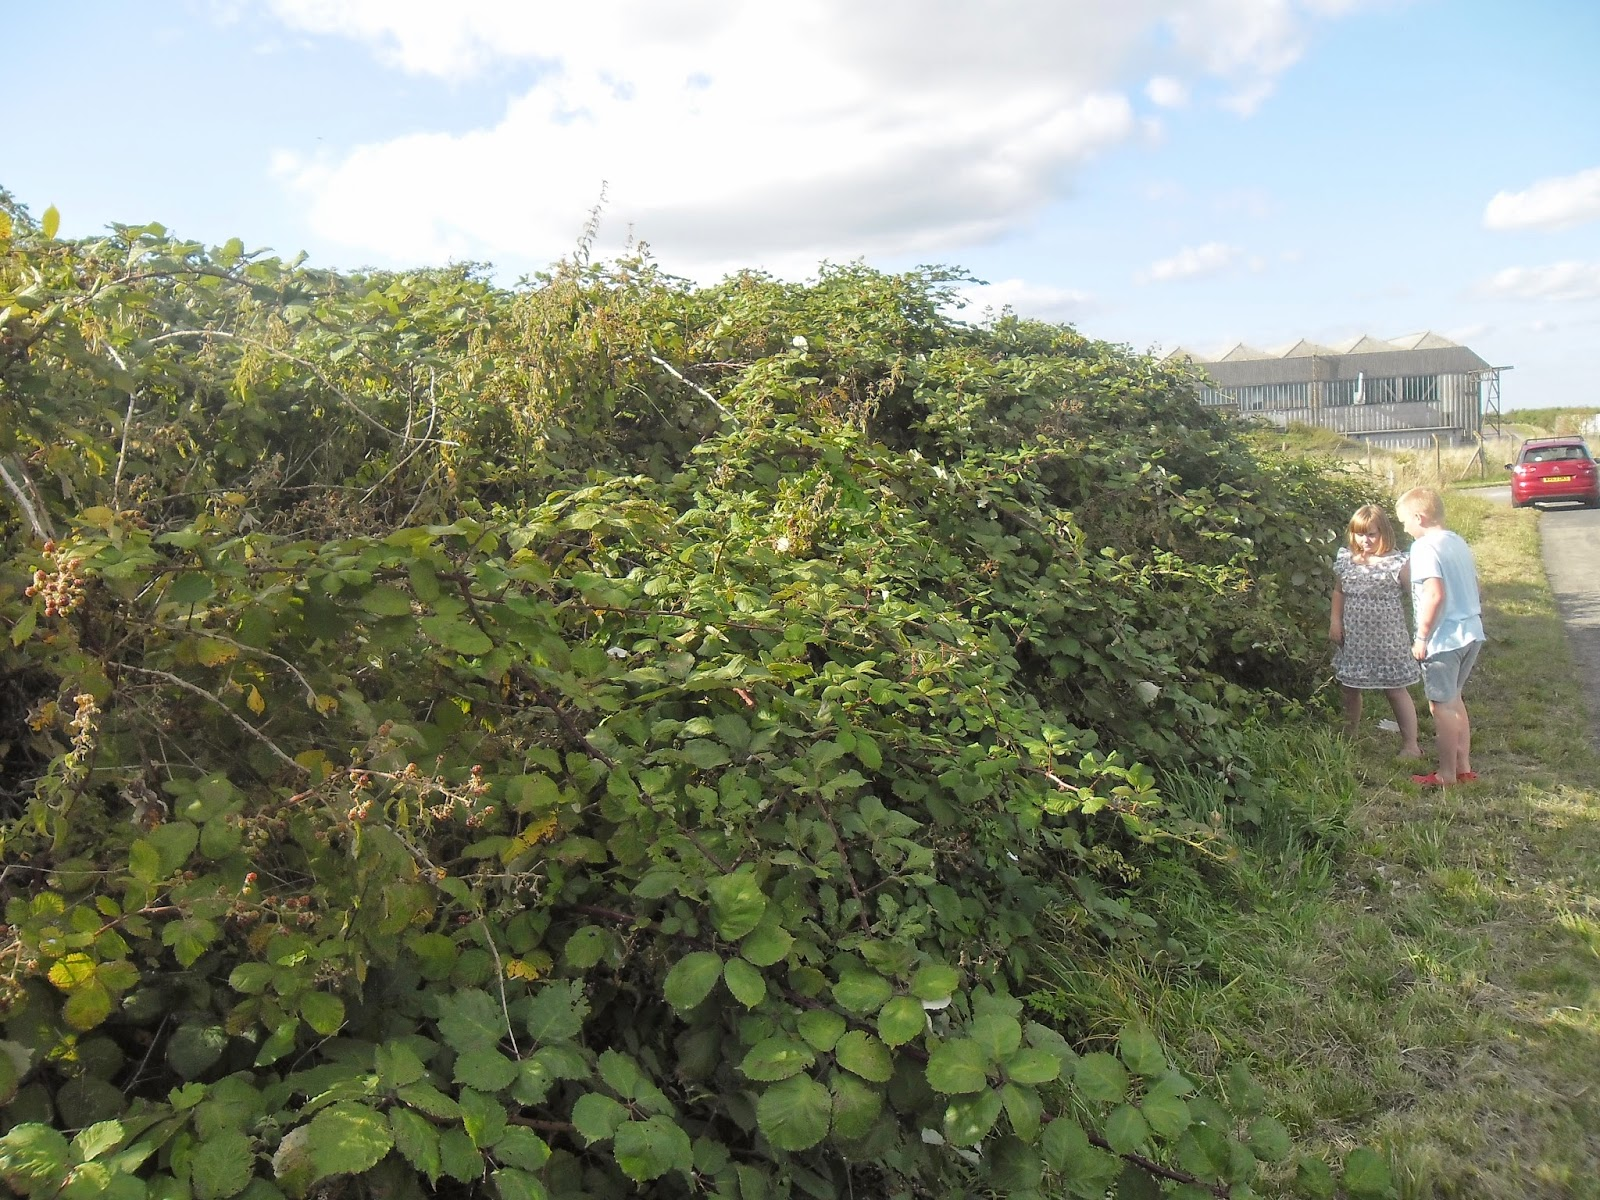 does anyone know of any larger bramble bushes elsewhere